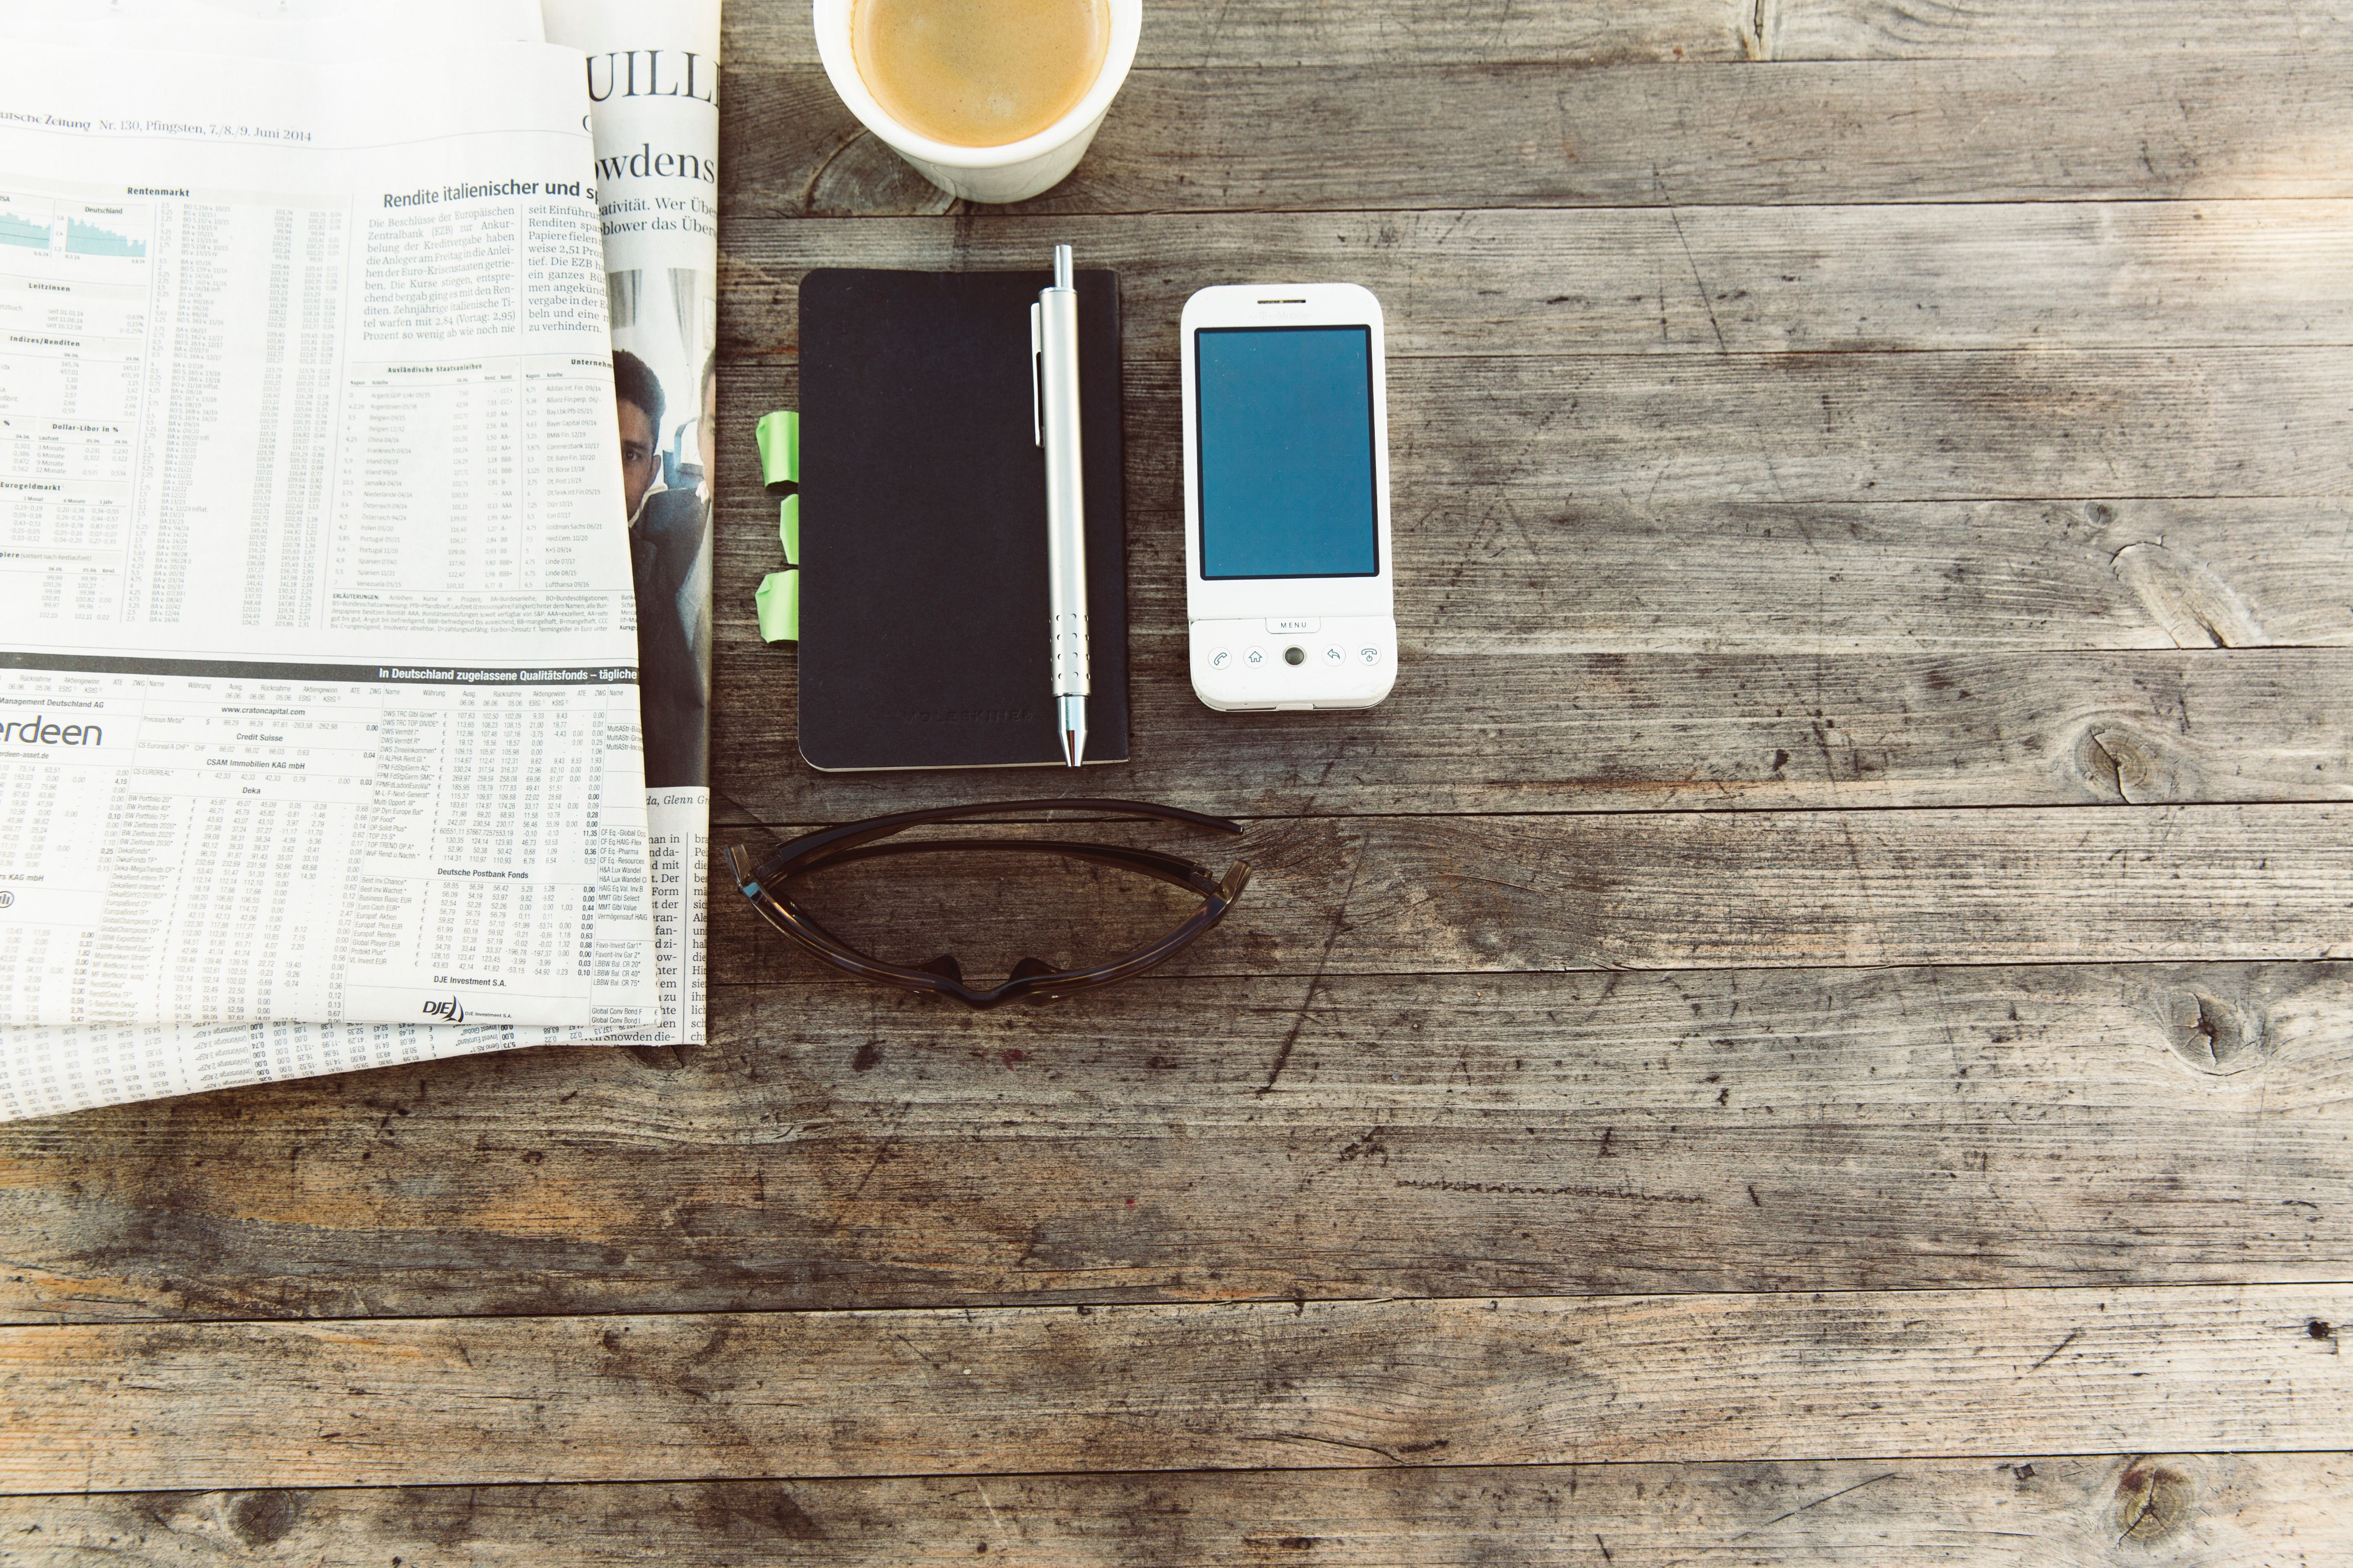 a phone and newspaper sitting on a wooden table